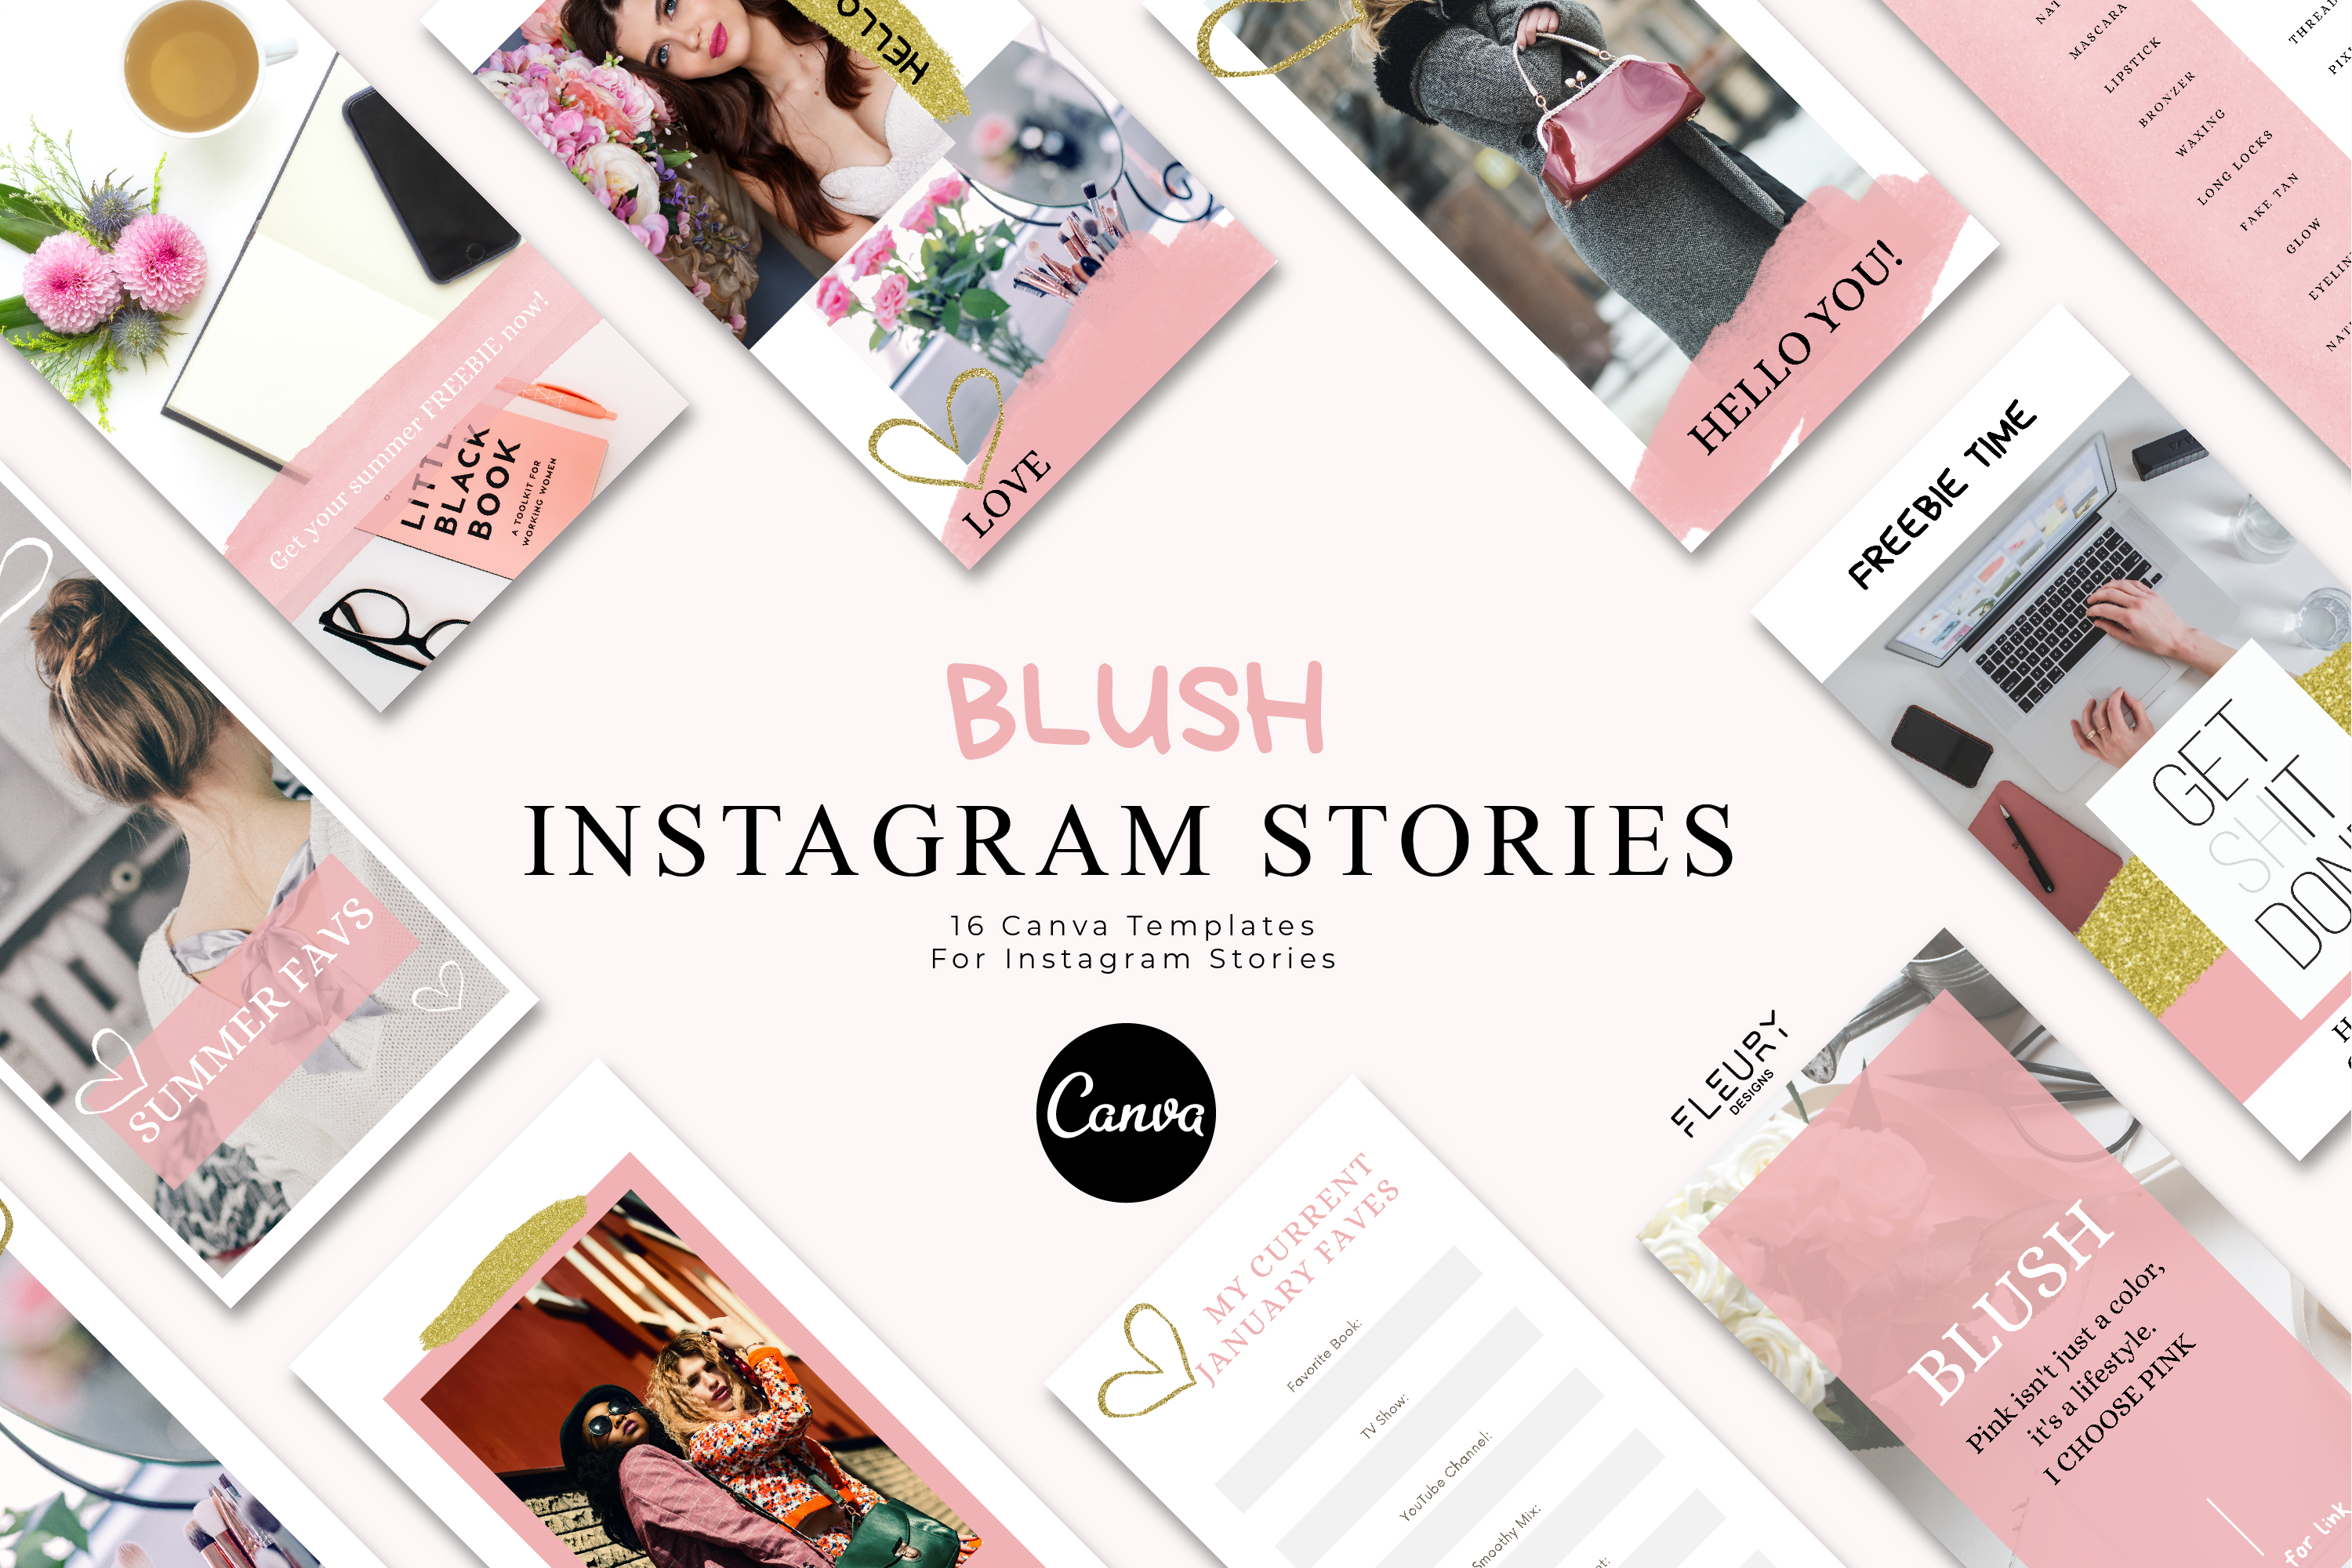 Instagram Story Canva Template - Blush example image 1